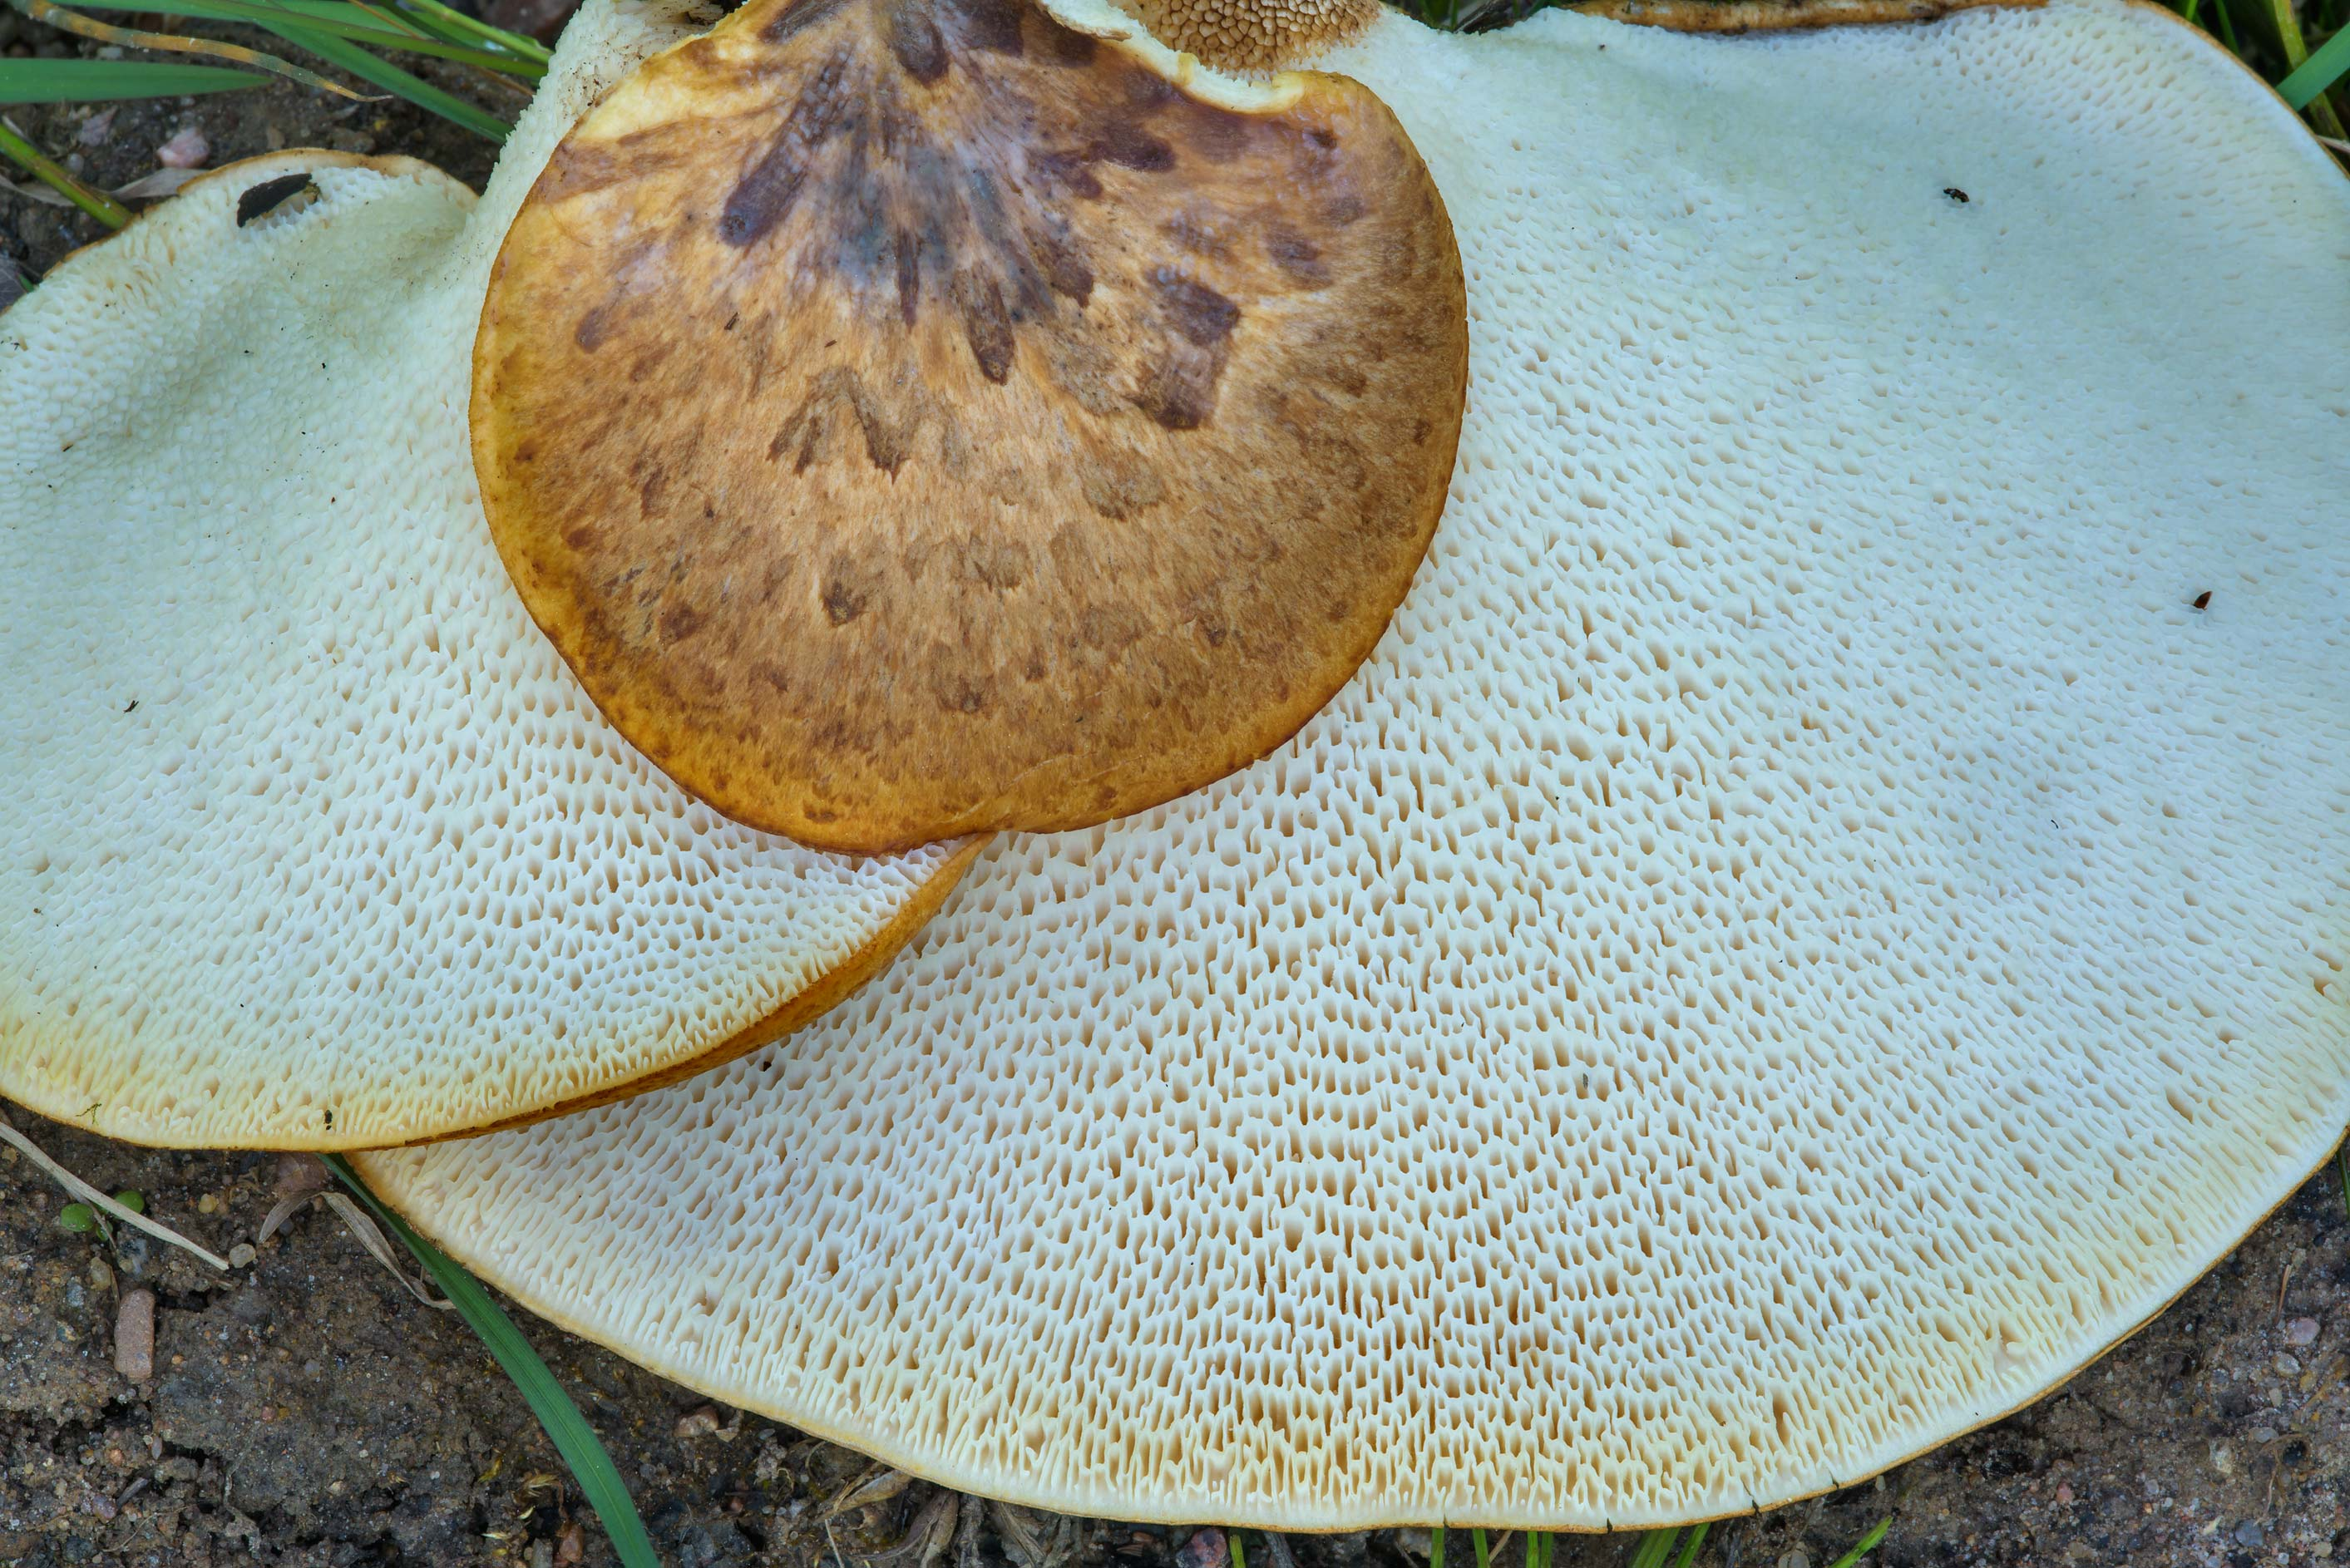 Caps of dryad's saddle (Cerioporus squamosus...Nos, west from St.Petersburg. Russia